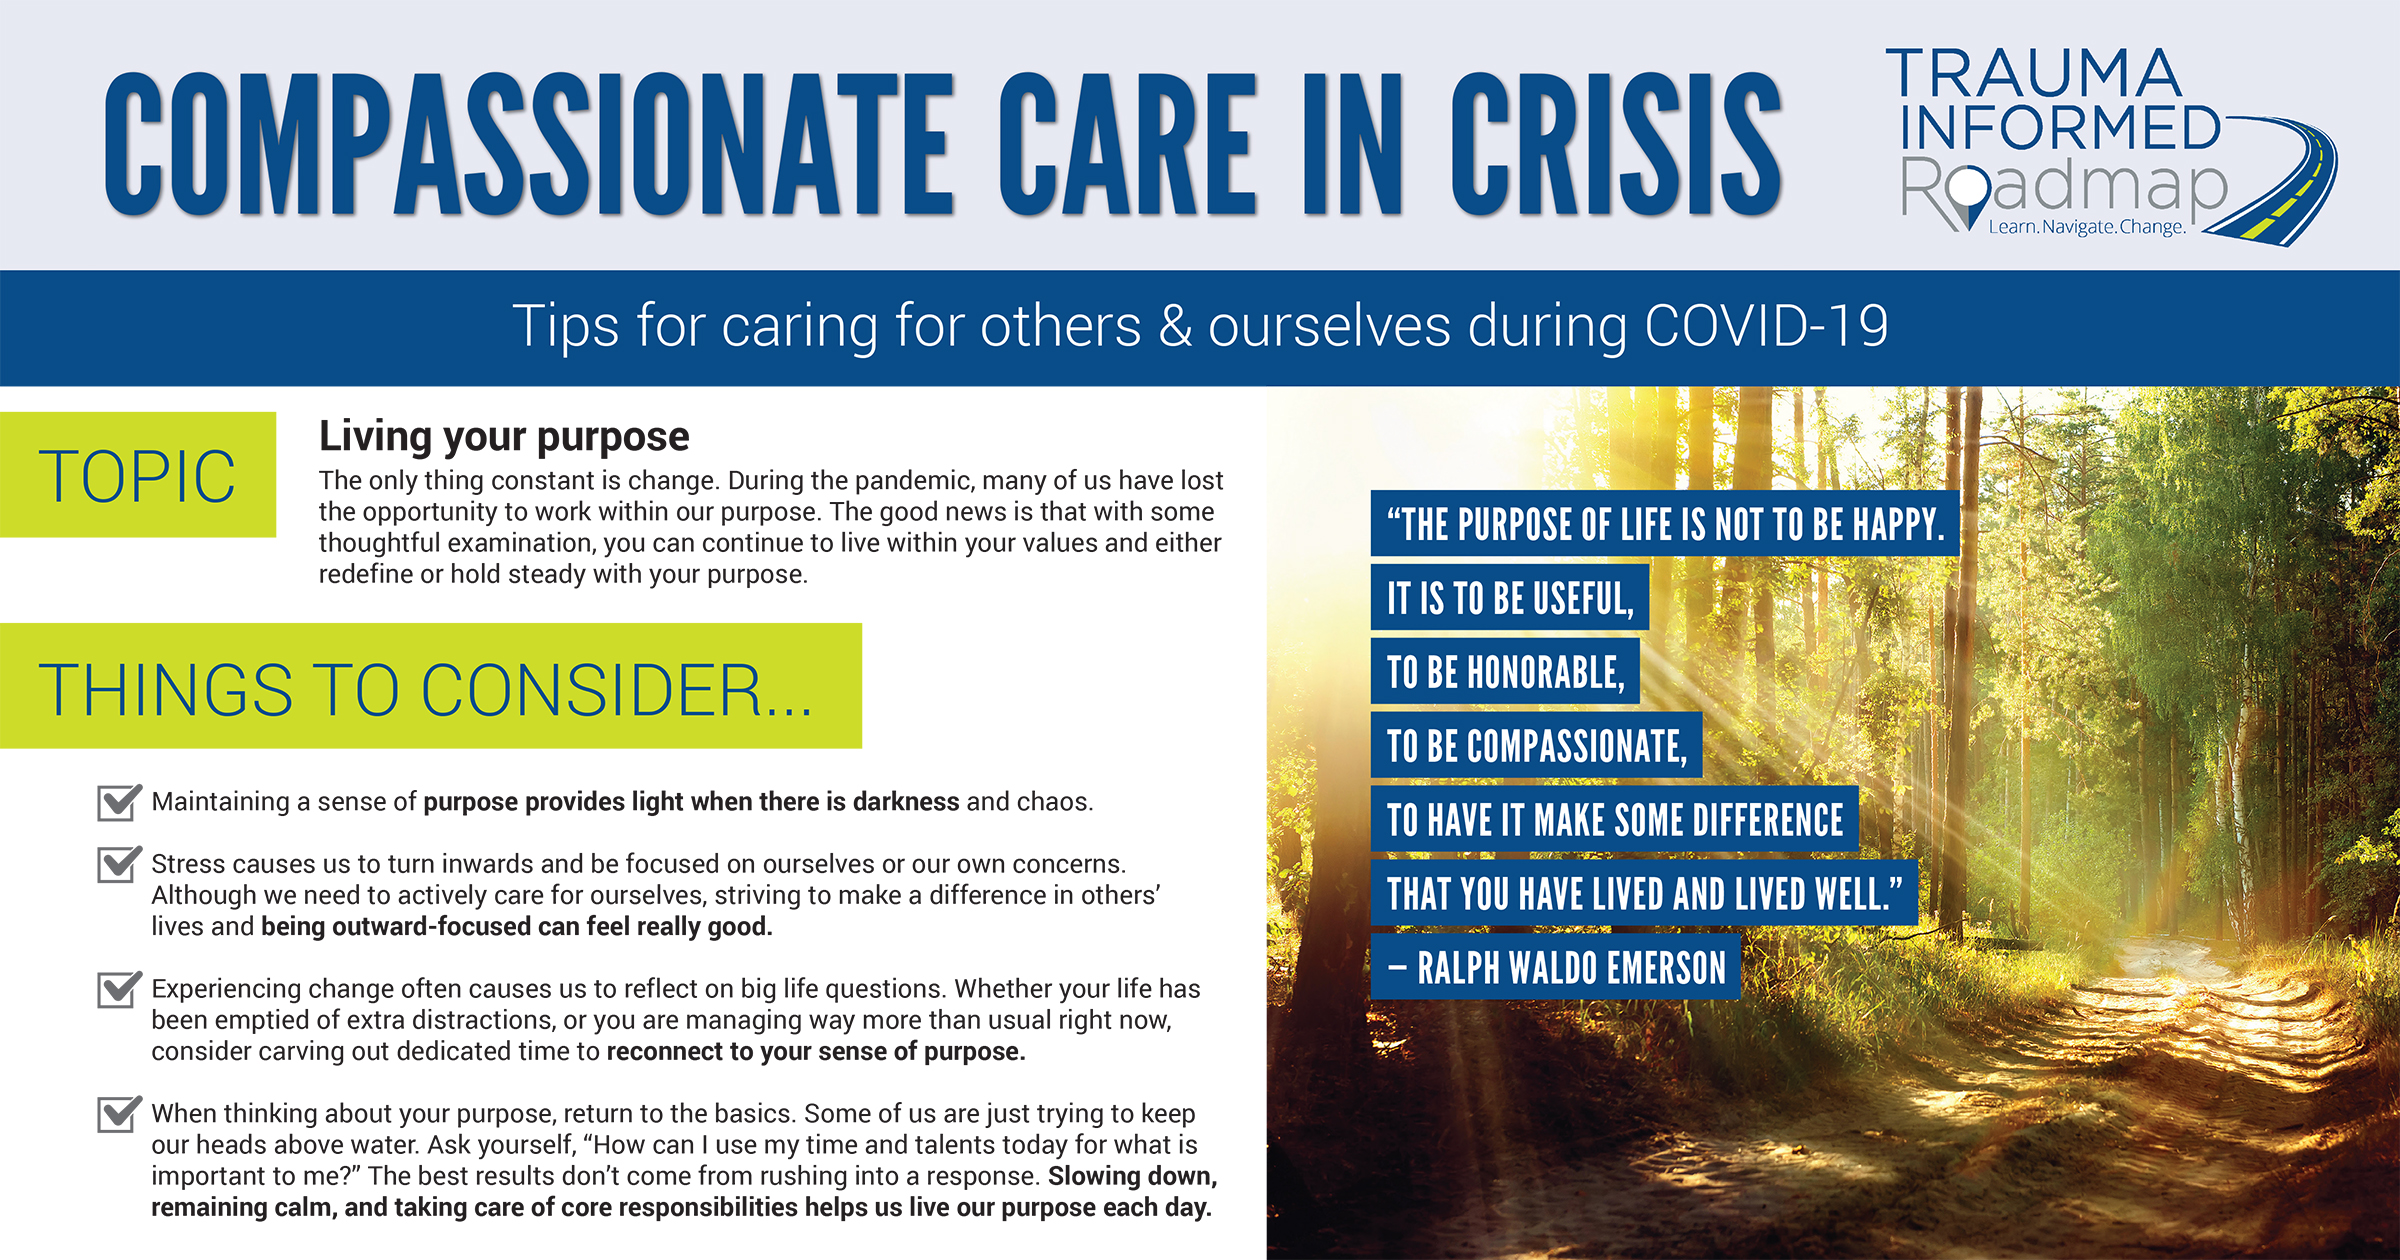 Compassionate Care in Crisis: Living Your Purpose